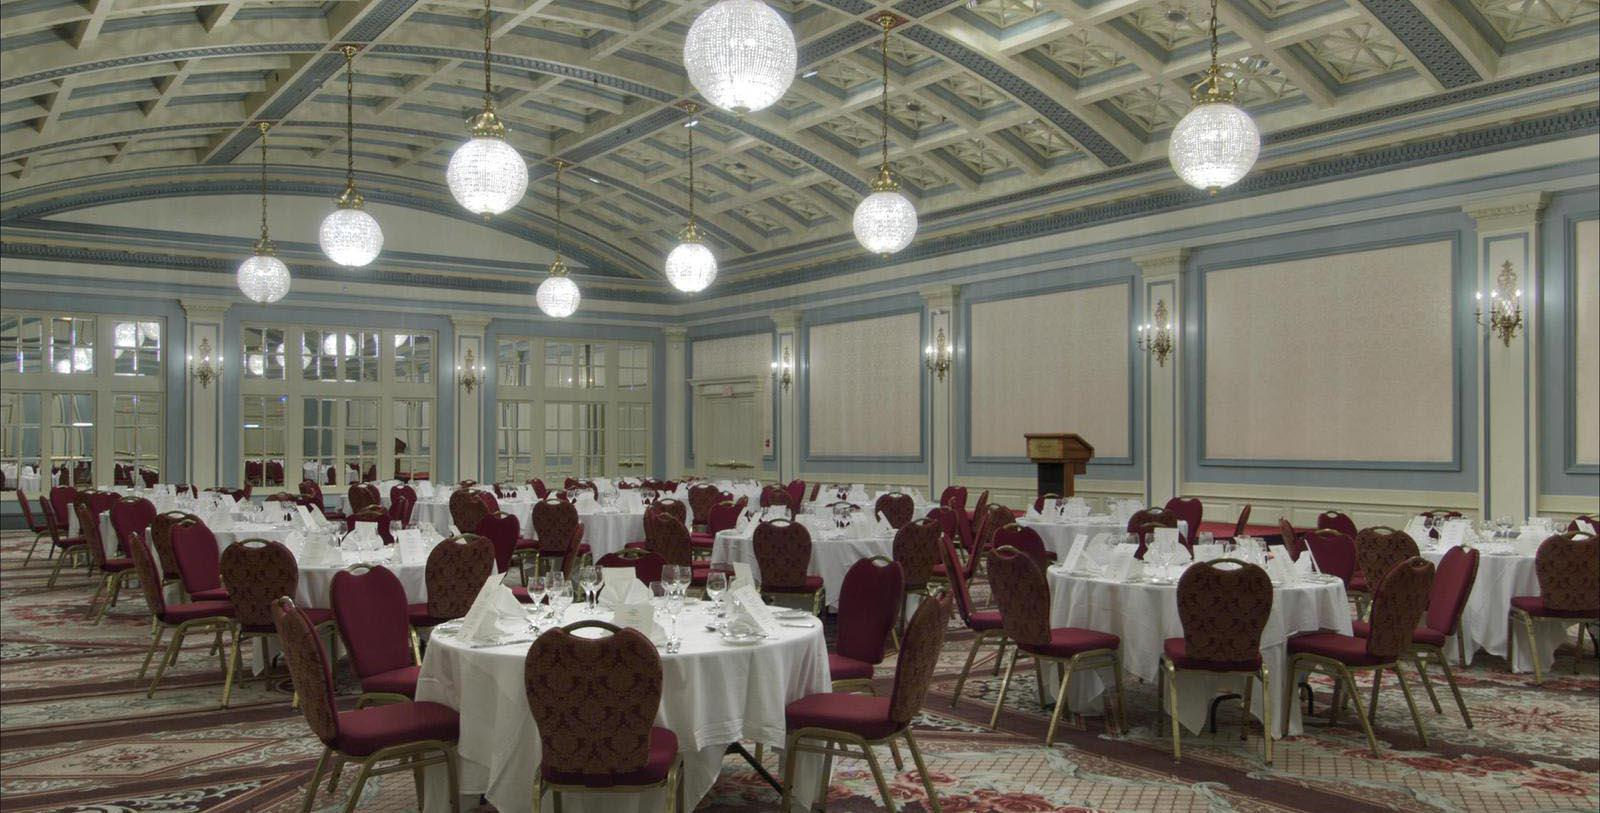 Image of ballroom set up for conference Fairmont Empress, 1908, Member of Historic Hotels Worldwide, in Victoria, British Columbia, Canada, Experience